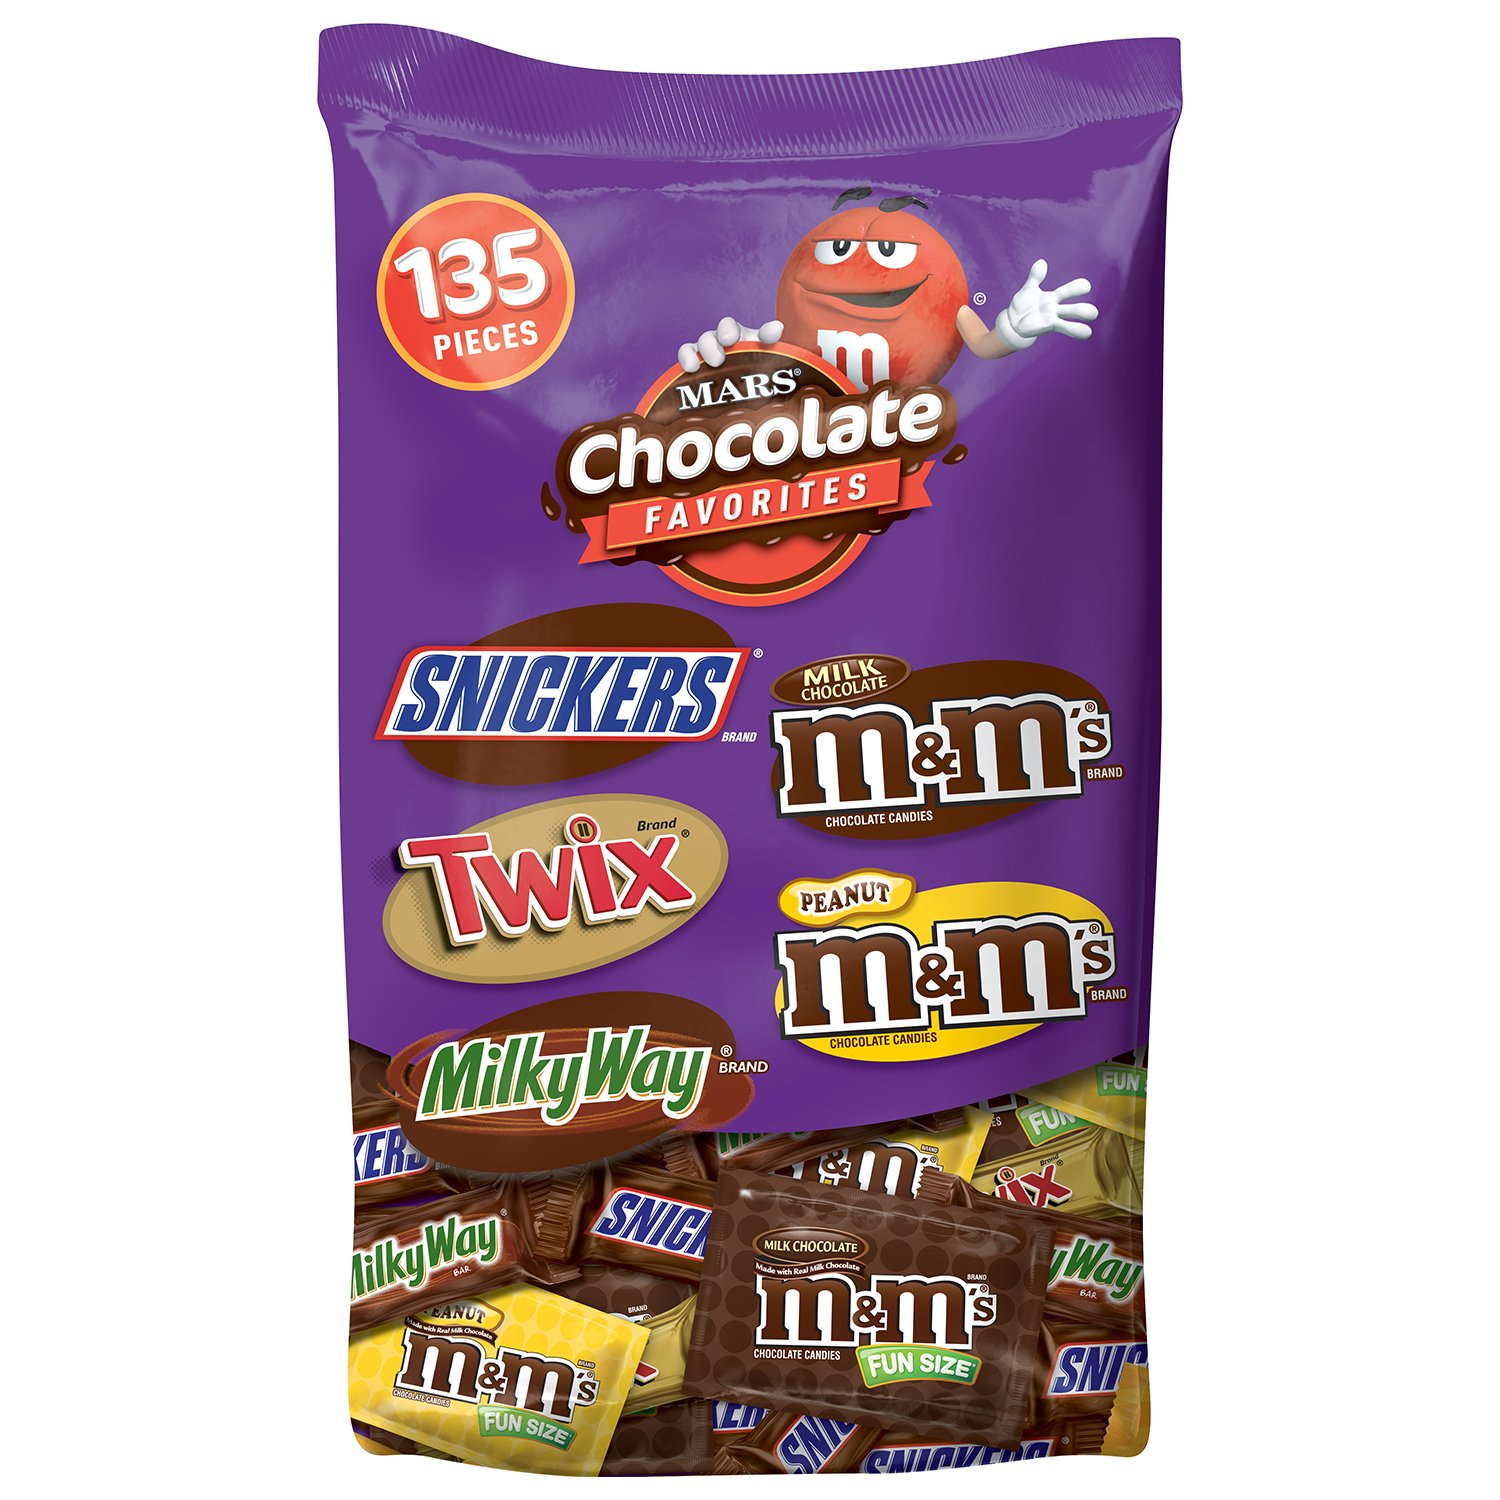 MARS Chocolate Favorites Halloween Candy Bars Variety Mix 69.2-Ounce 135-Piece Bag by Mars (Image #1)